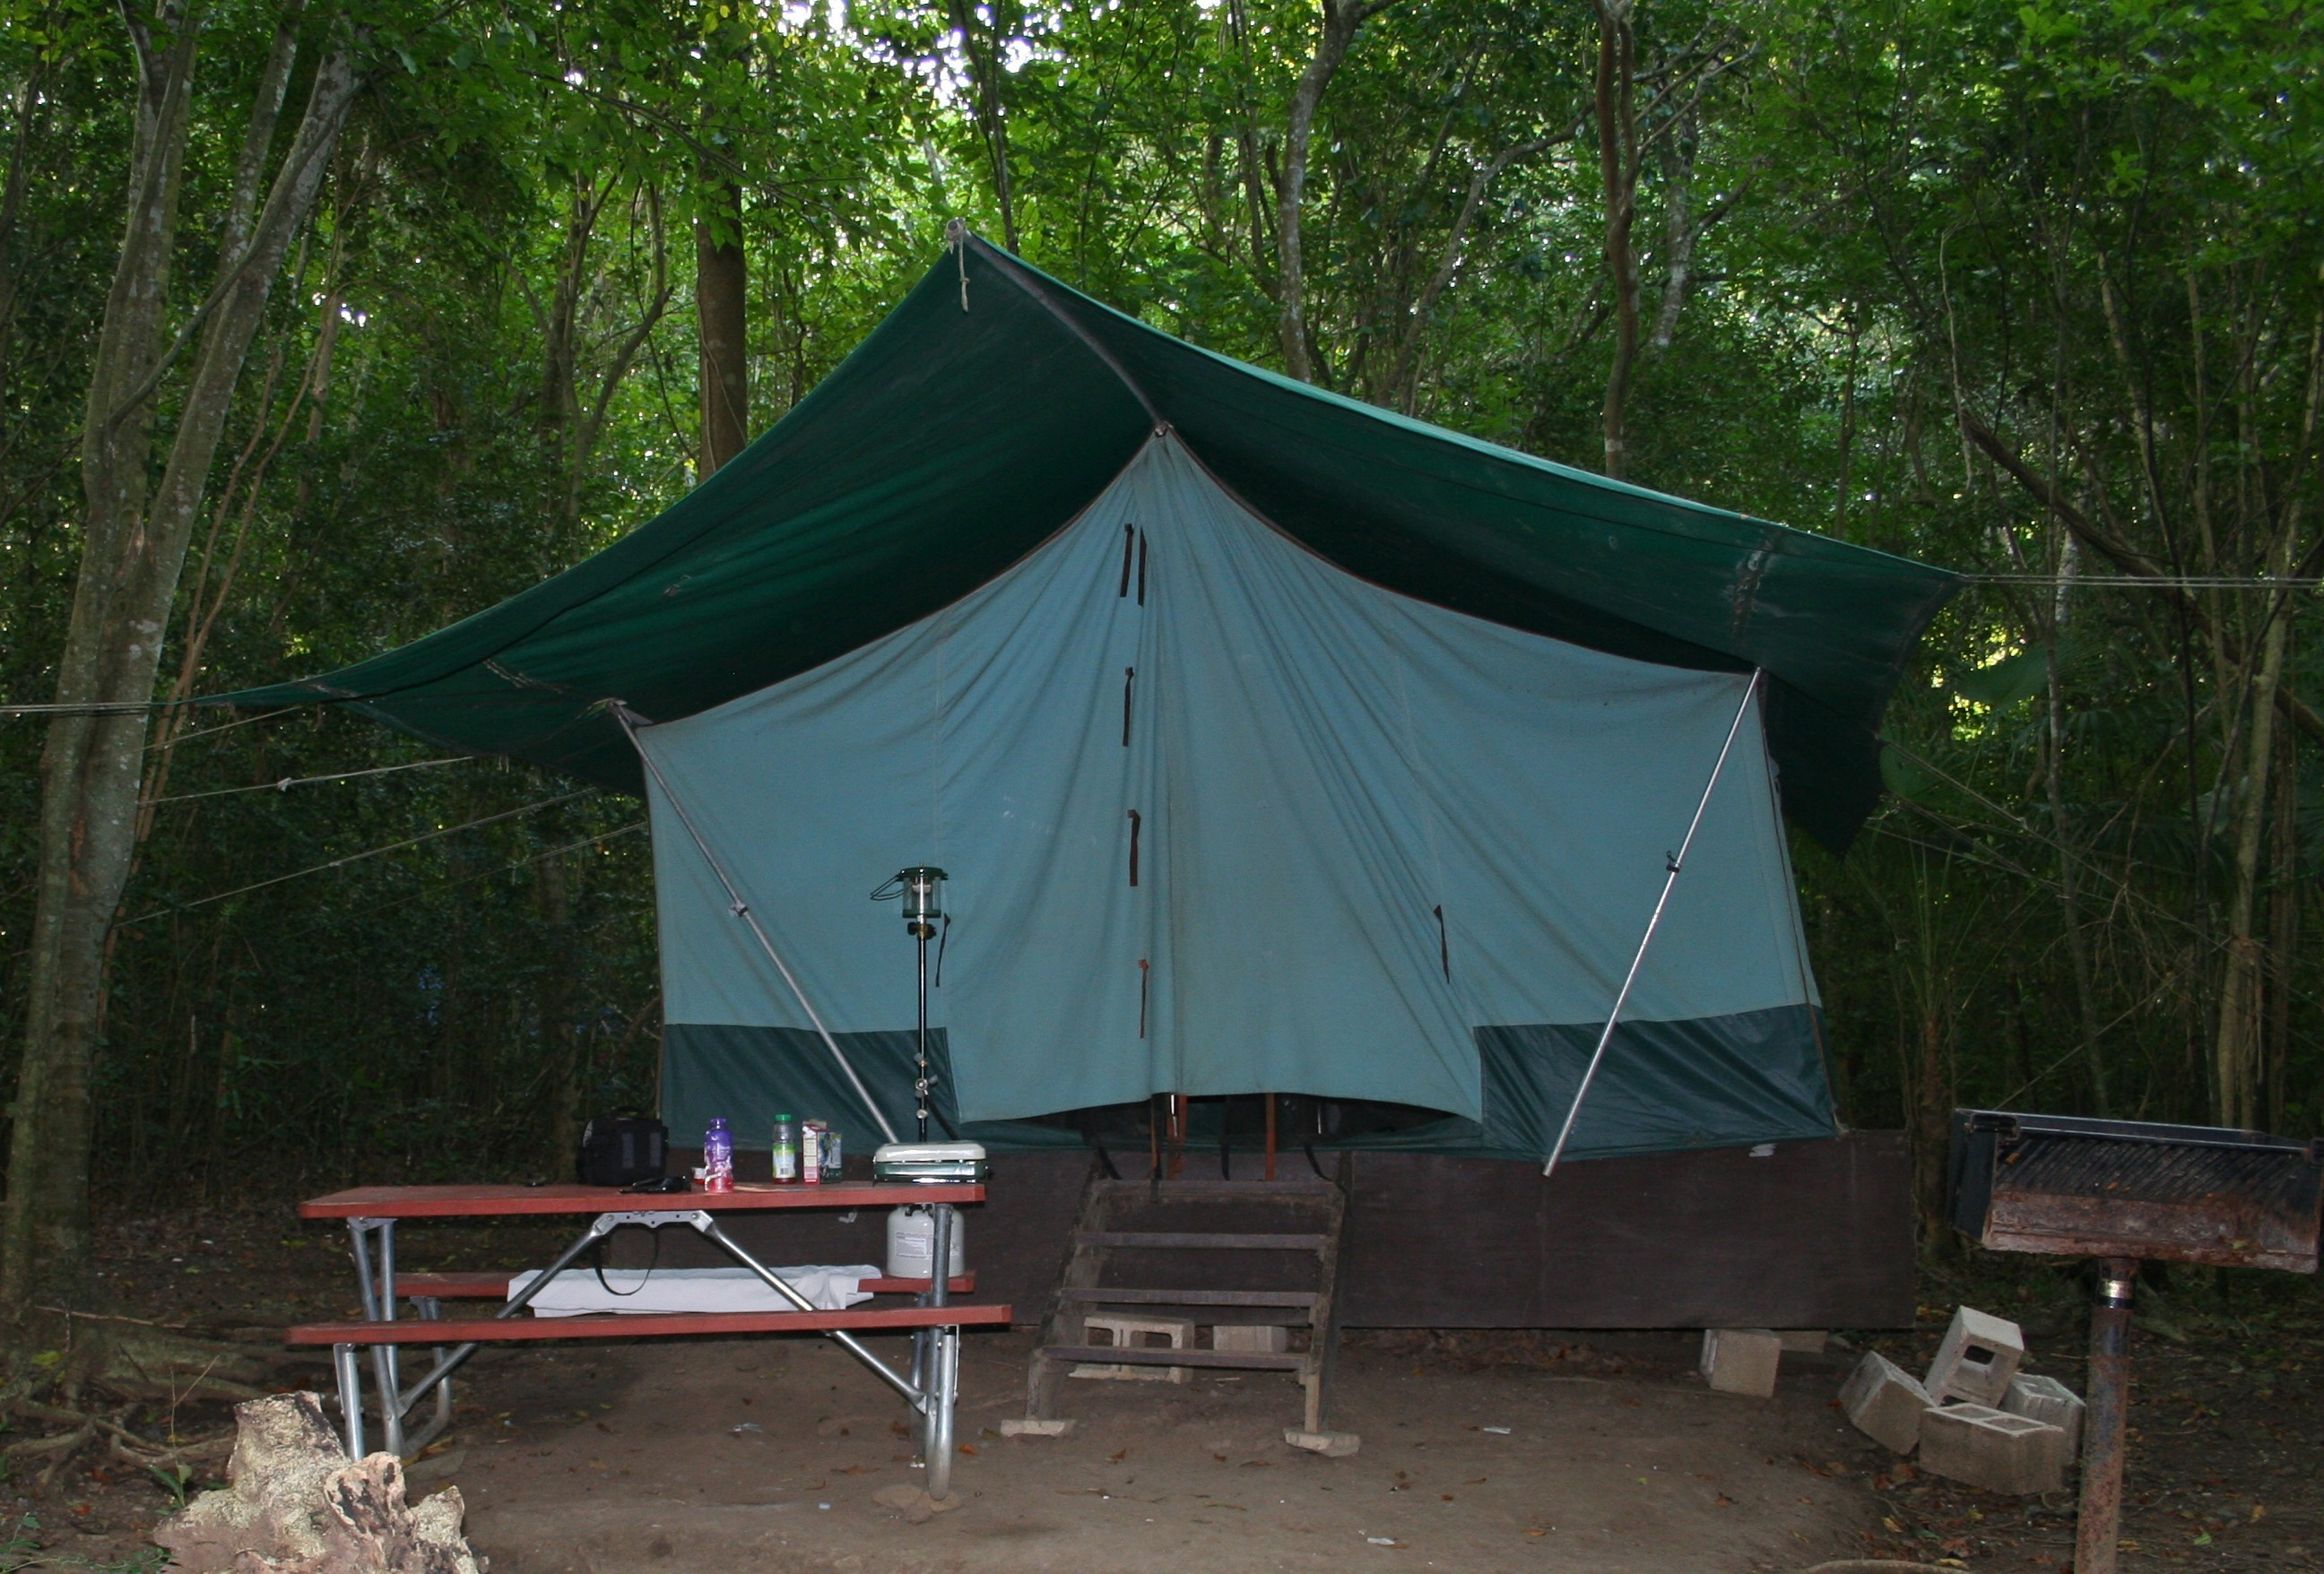 Cinnamon Bay Campground can provide a tent site with all the gear you need.